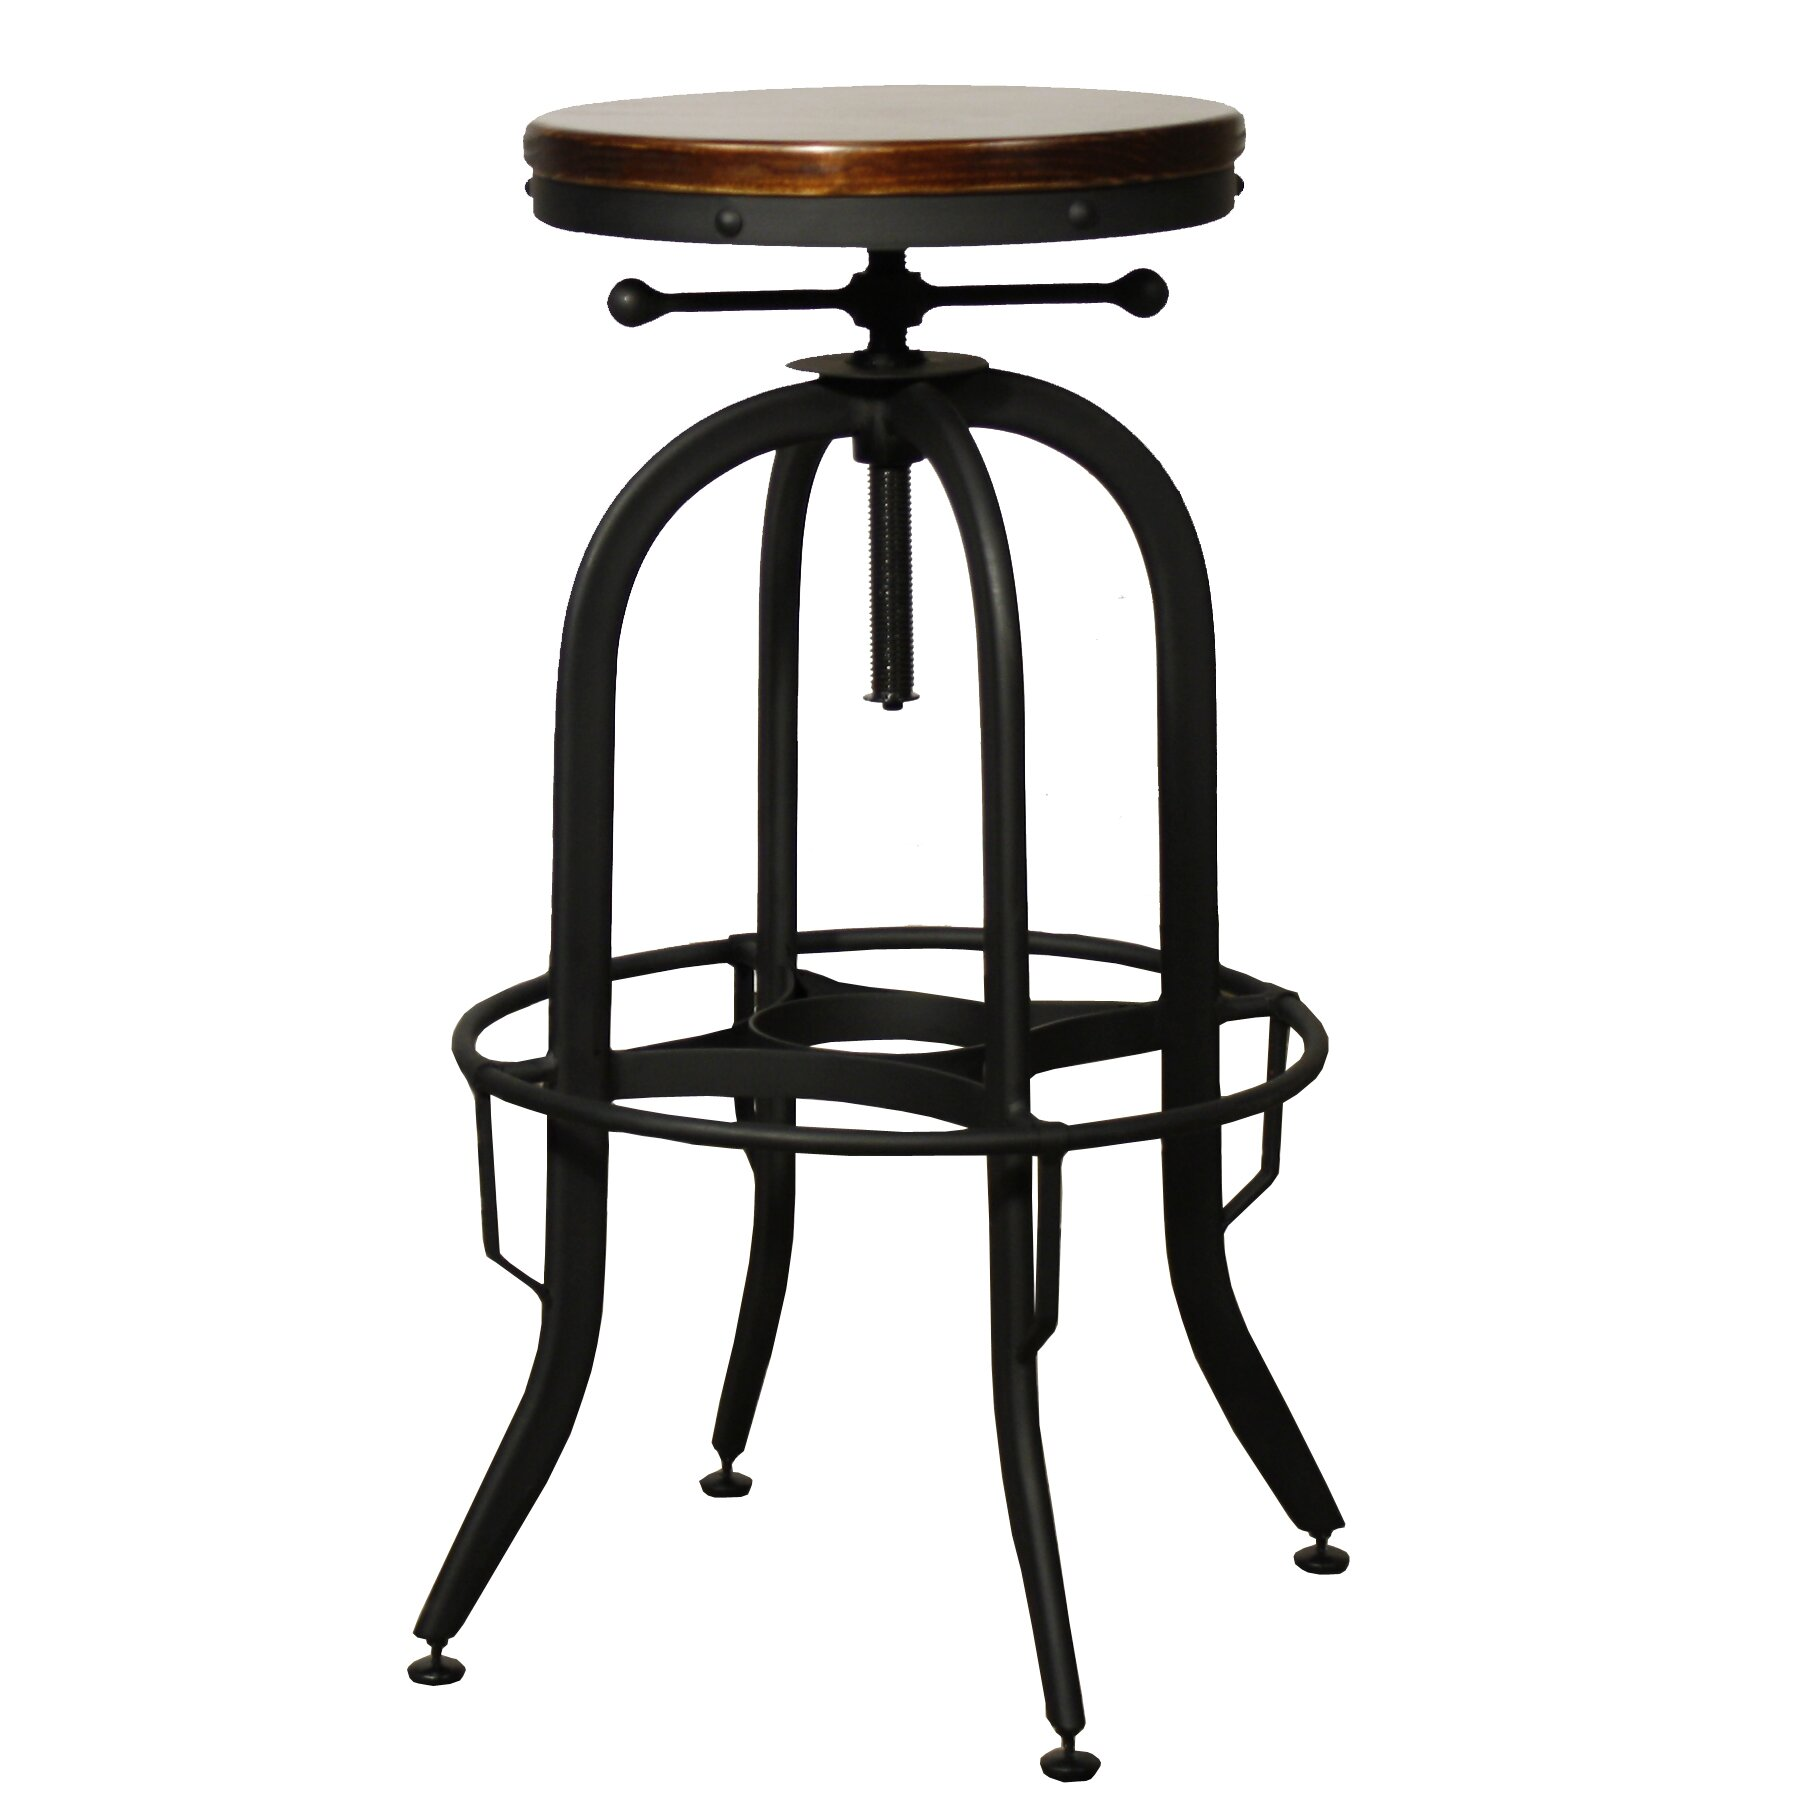 New Pacific Direct Industrial Adjustable Height Swivel Bar  : New Pacific Direct Industrial Adjustable Height Swivel Bar Stool from www.wayfair.com size 1806 x 1806 jpeg 177kB